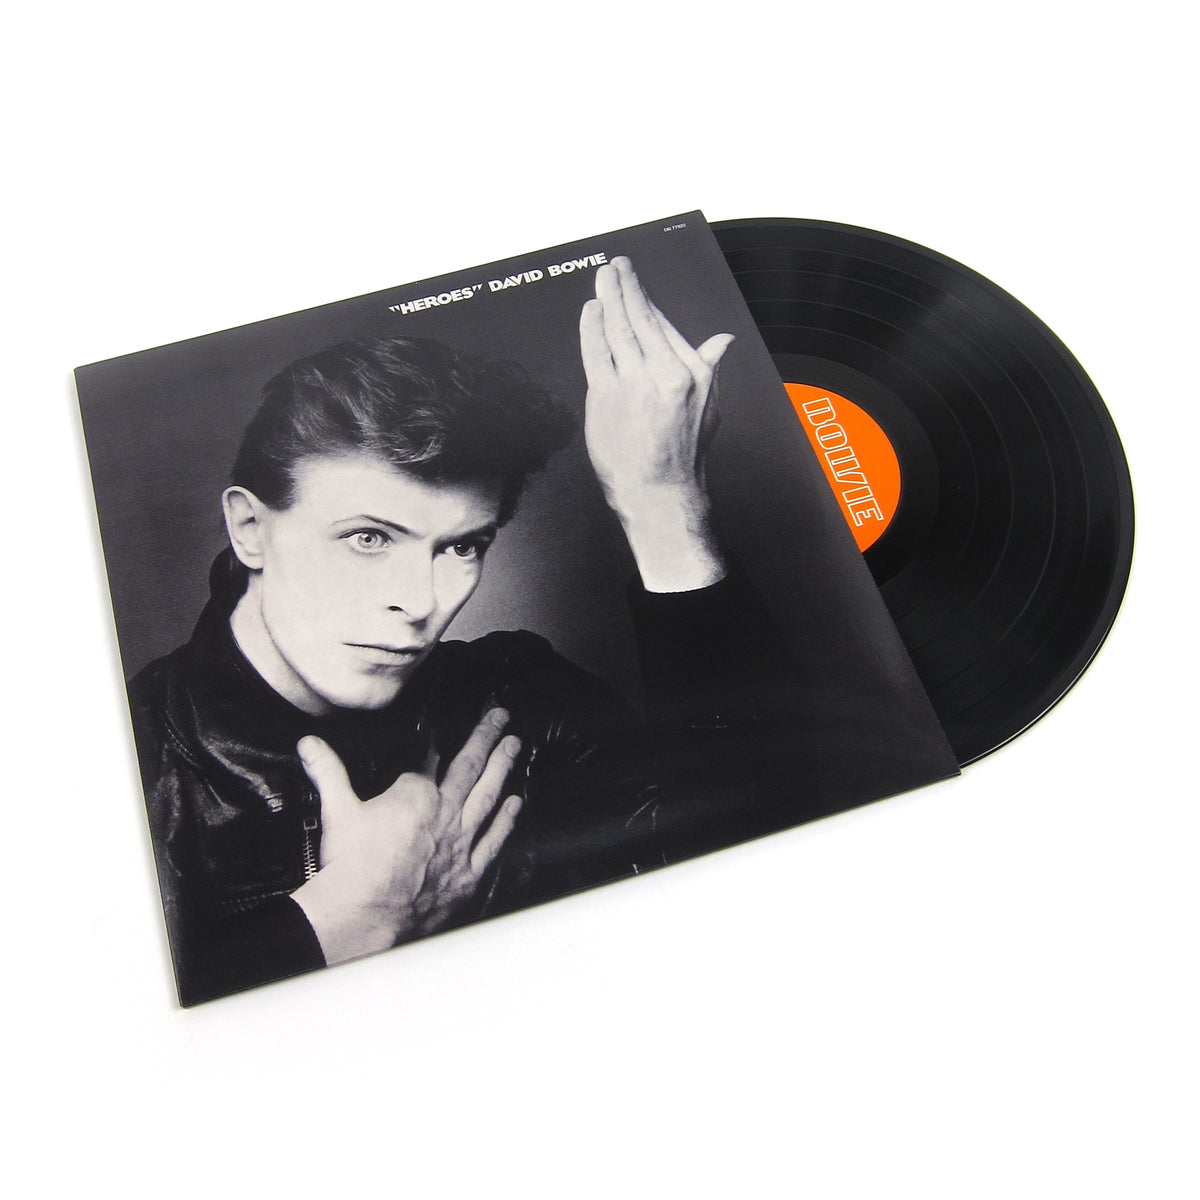 David Bowie: Berlin Trilogy 180g Vinyl LP Album Pack (Low, Heroes, Lodger)